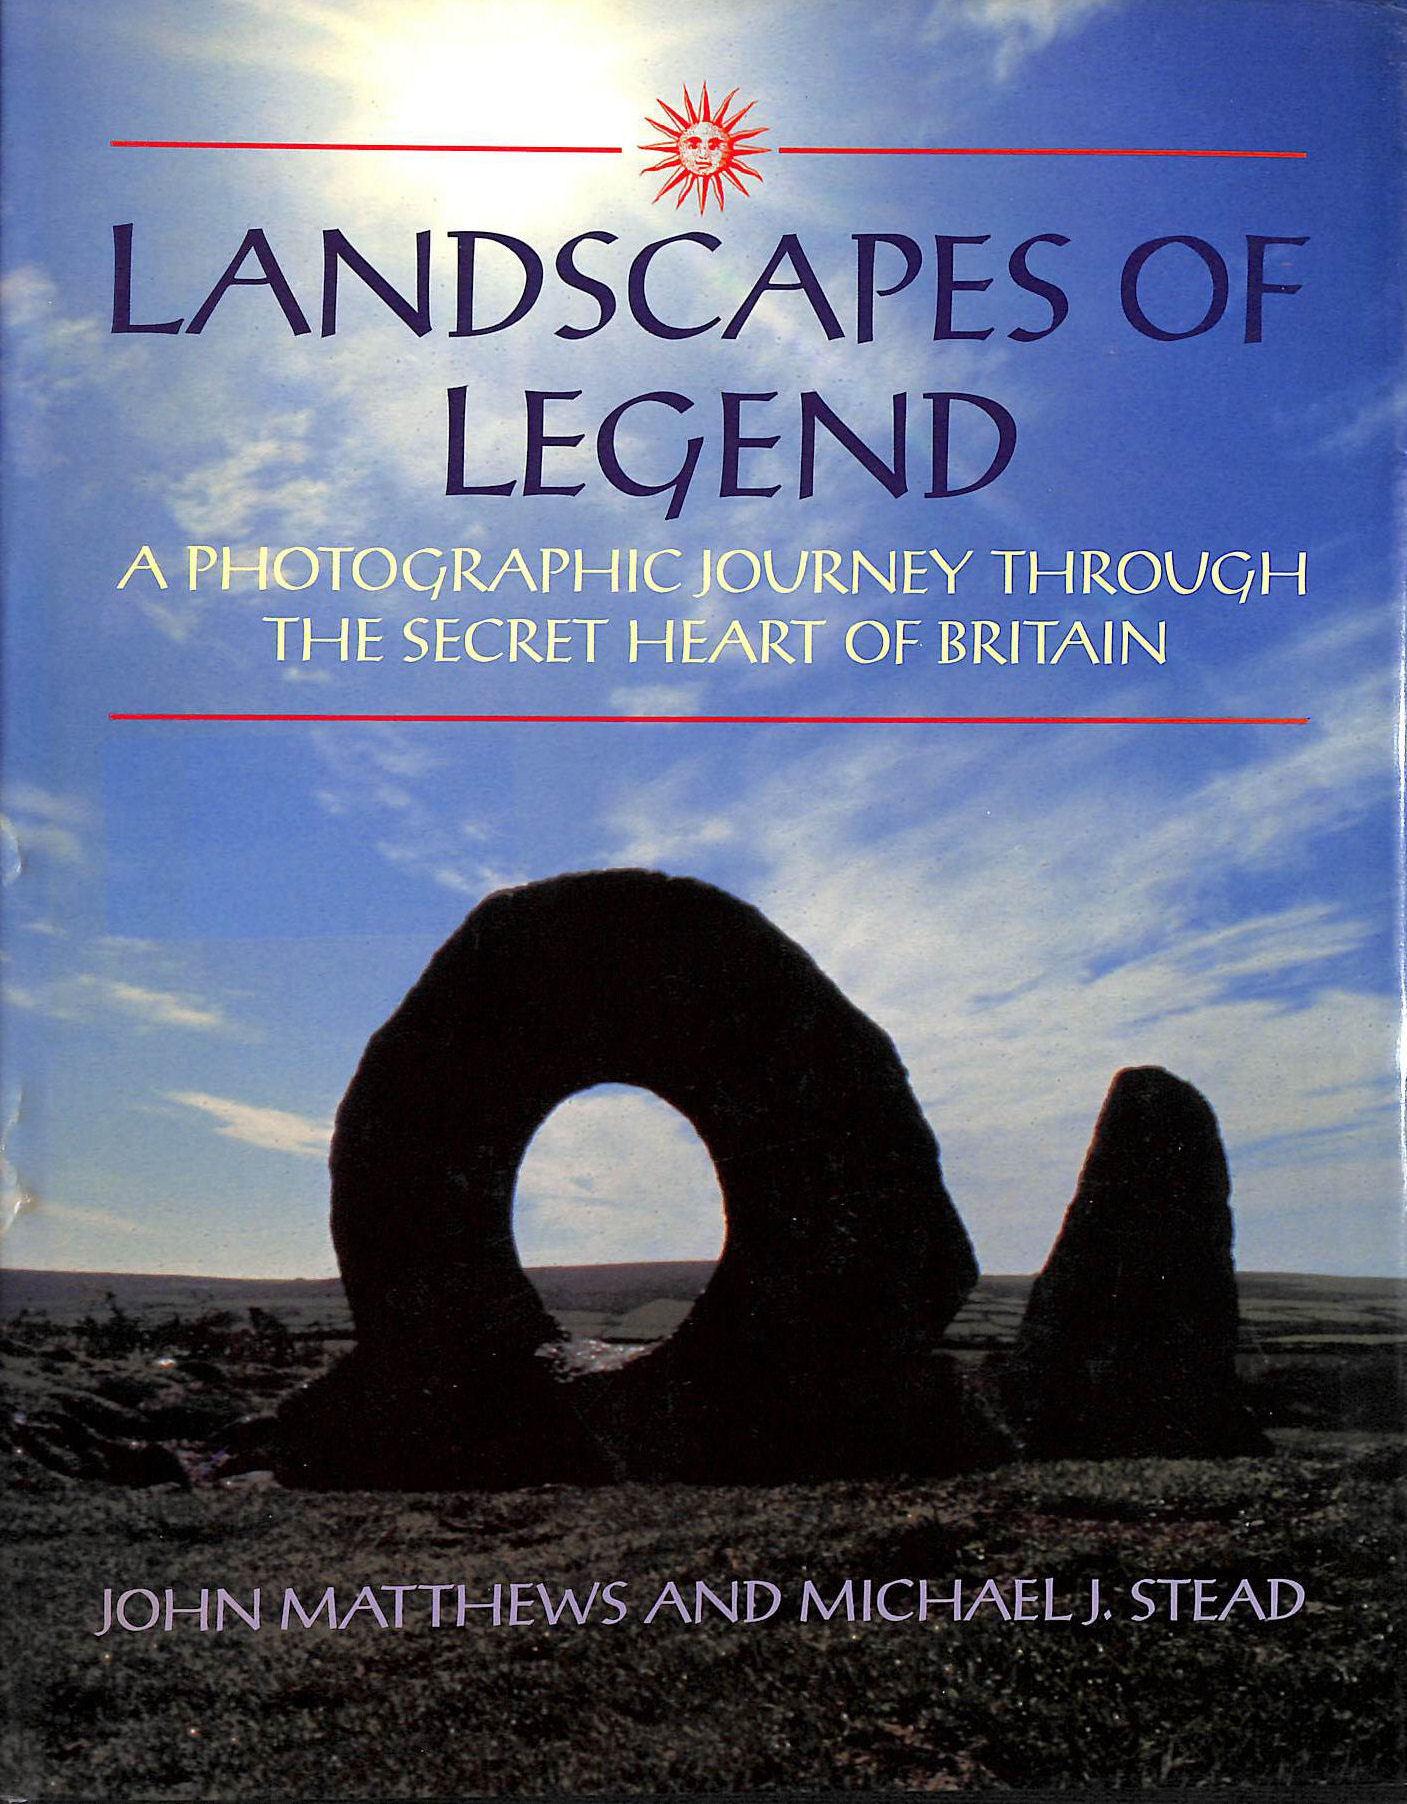 Image for Landscapes of Legends: Photographic Journey Through Secret Heart of Britain